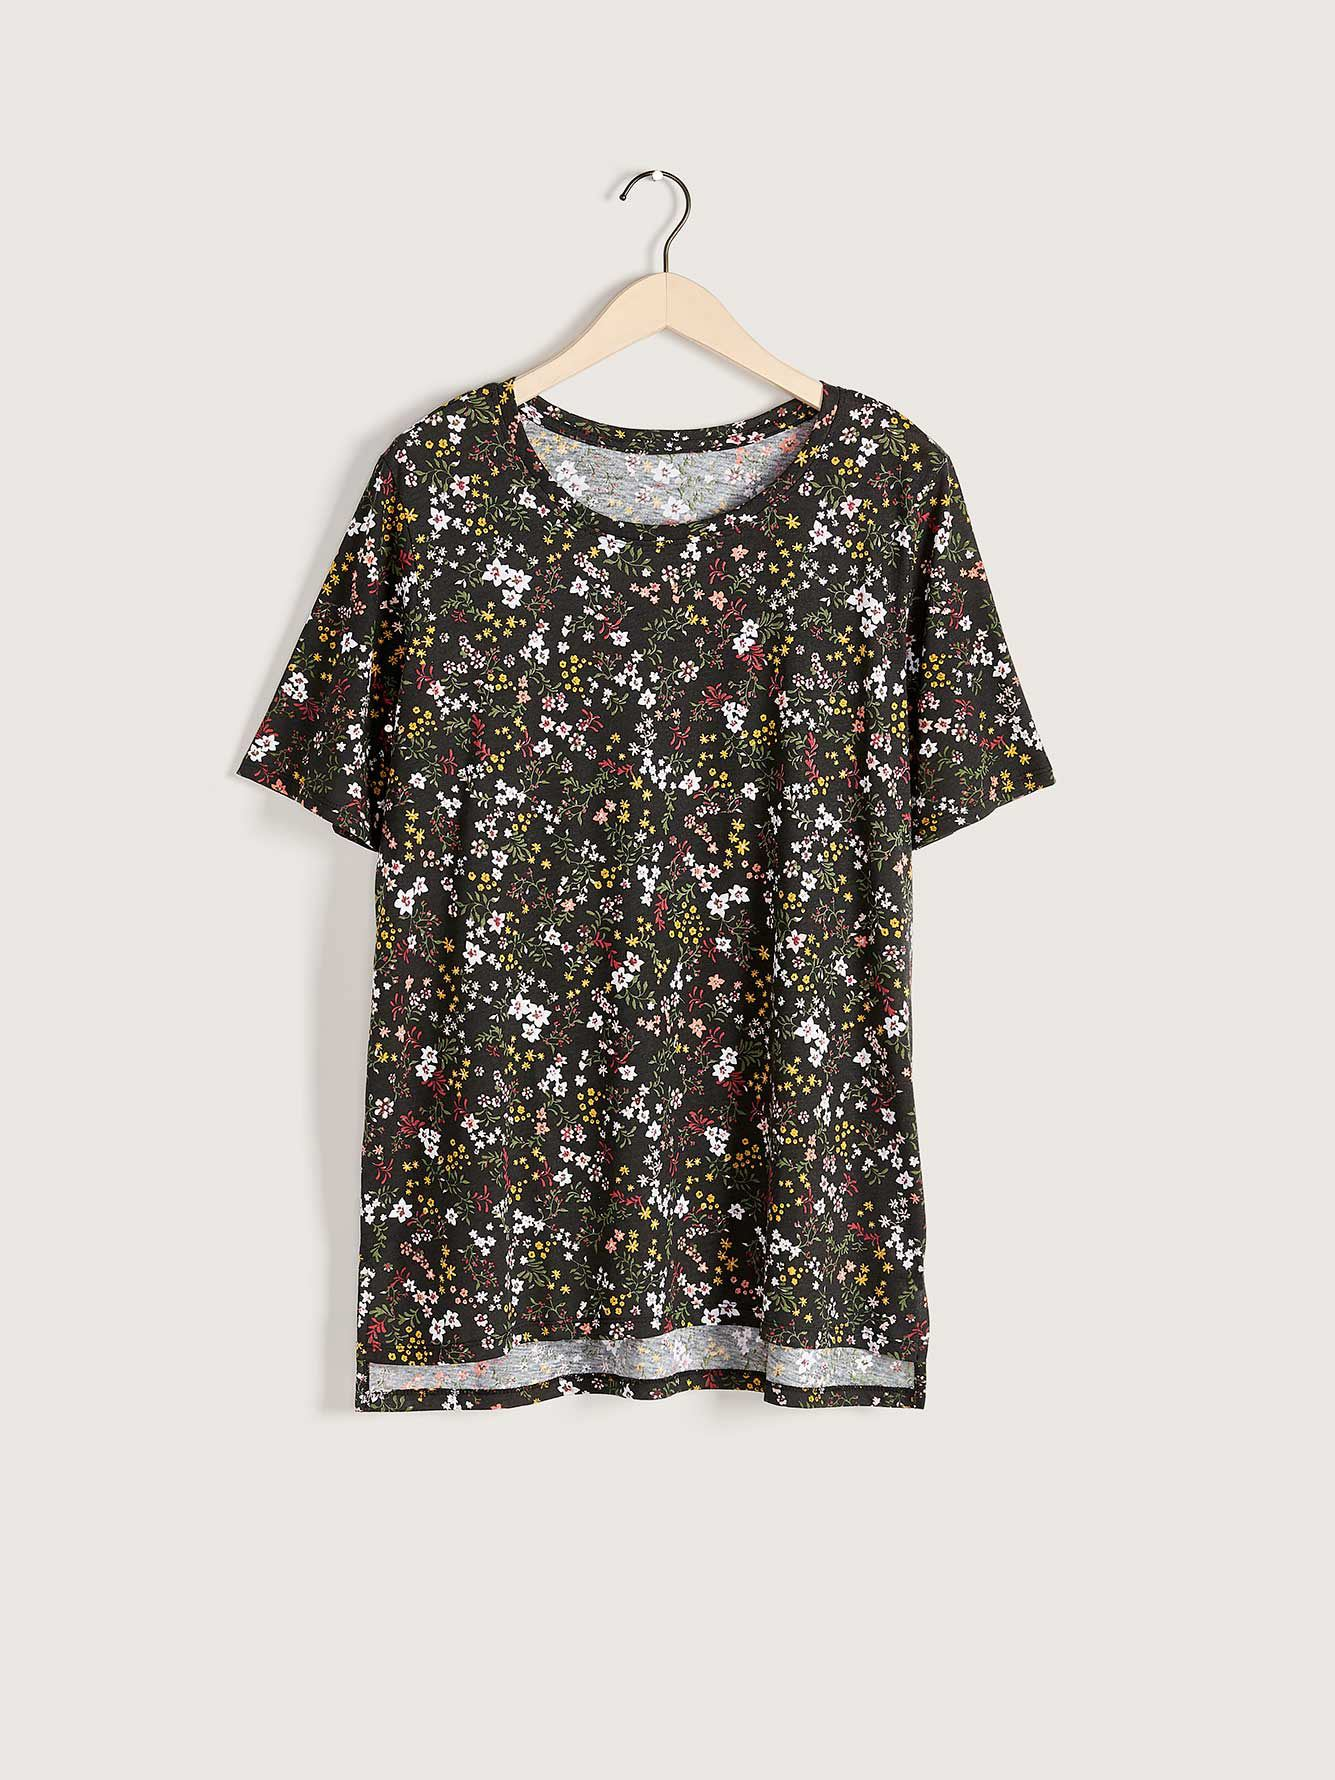 Printed Scoop-Neck T-Shirt - In Every Story